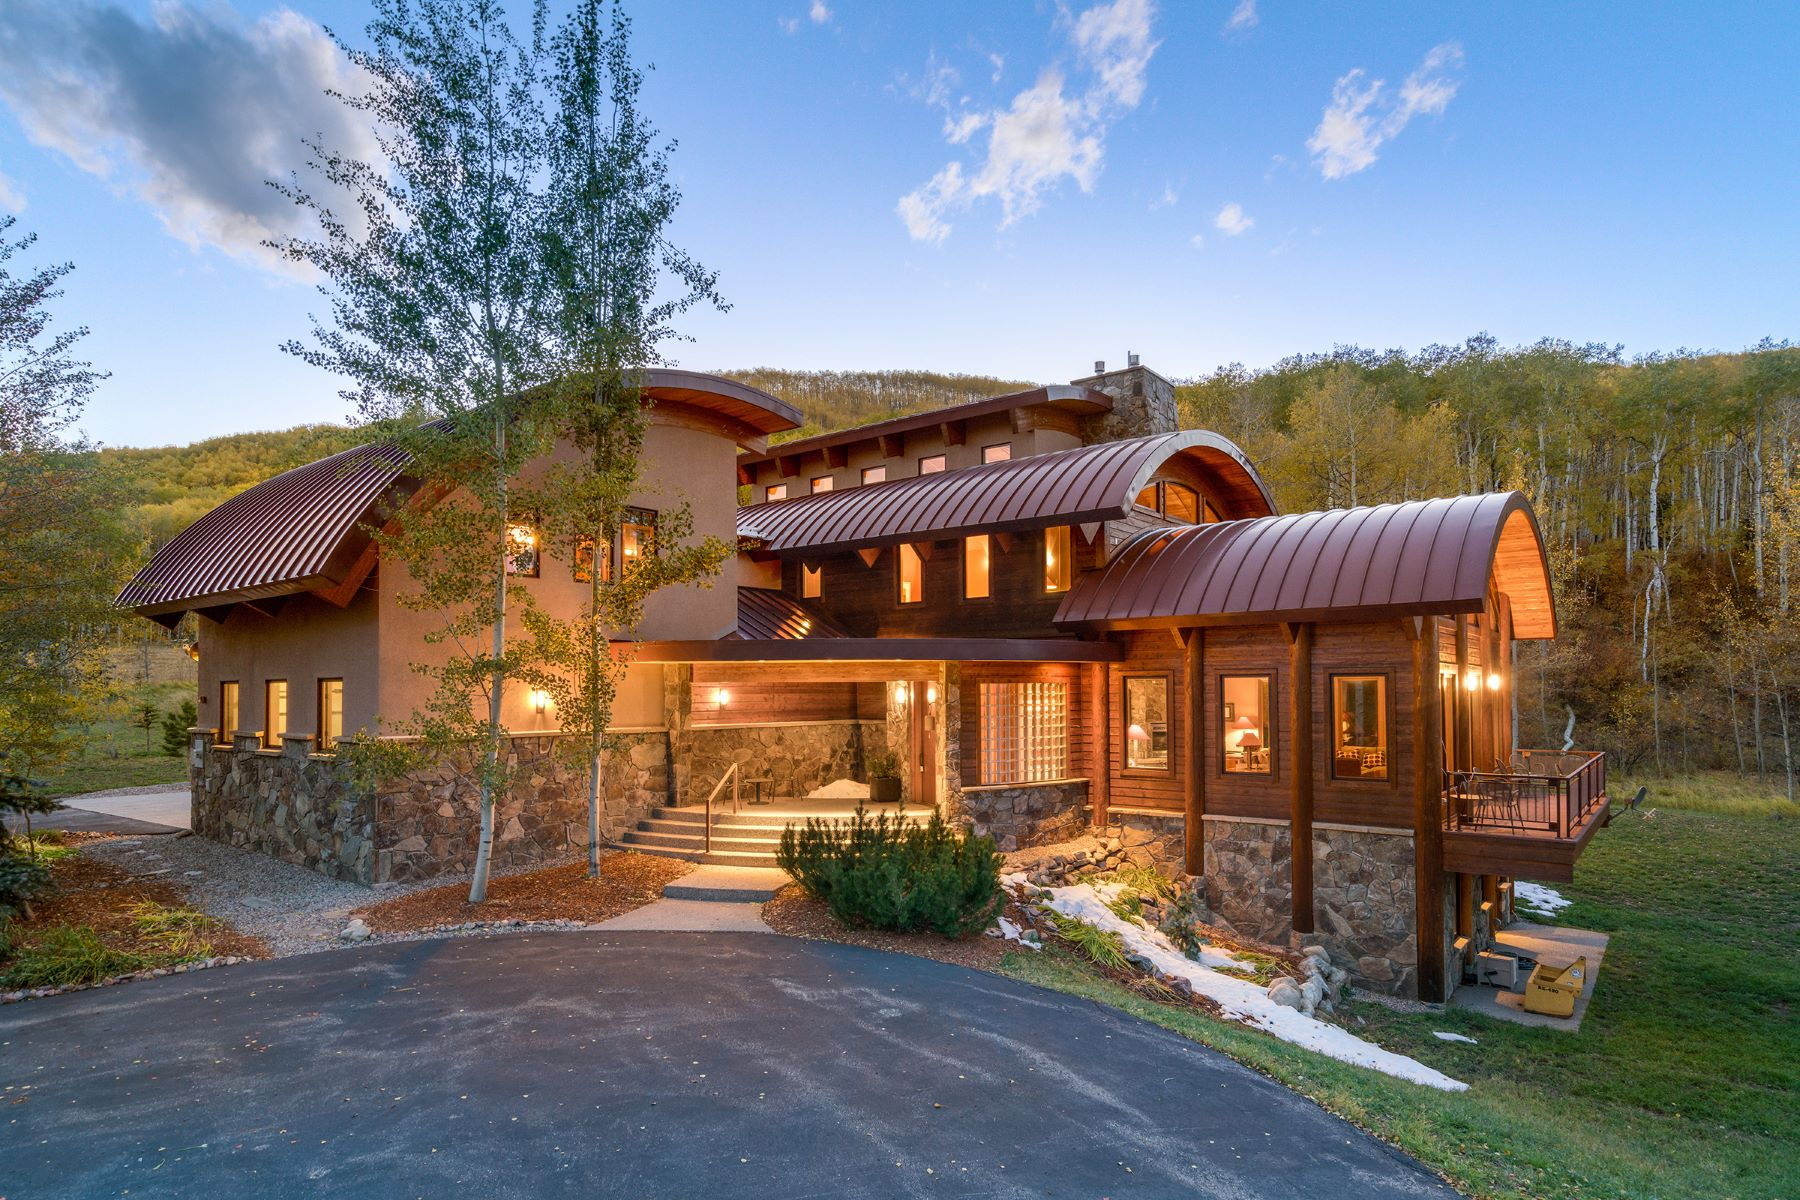 Single Family Homes for Active at Steamboat Serenity 26700 Henderson Park Rd Oak Creek, Colorado 80487 United States